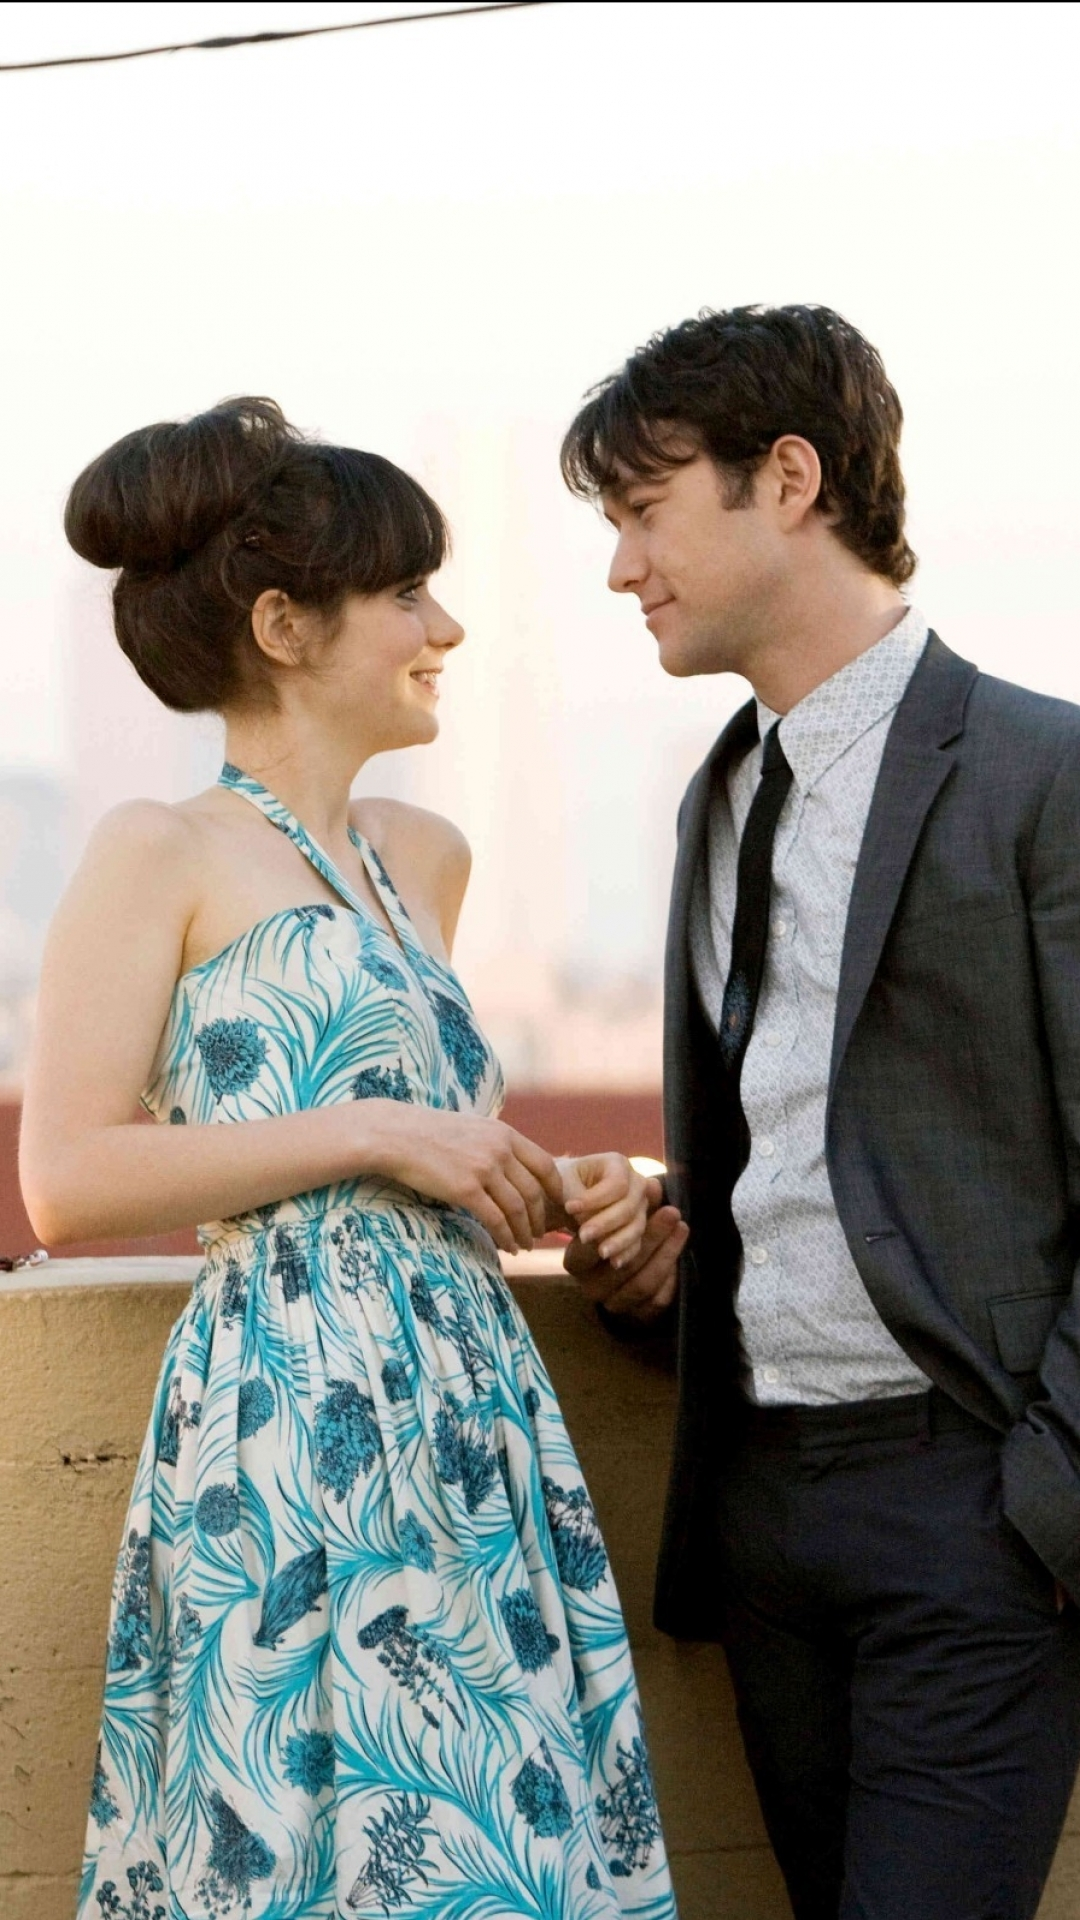 movie/500 days of summer (1080x1920) wallpaper id: 71845 - mobile abyss